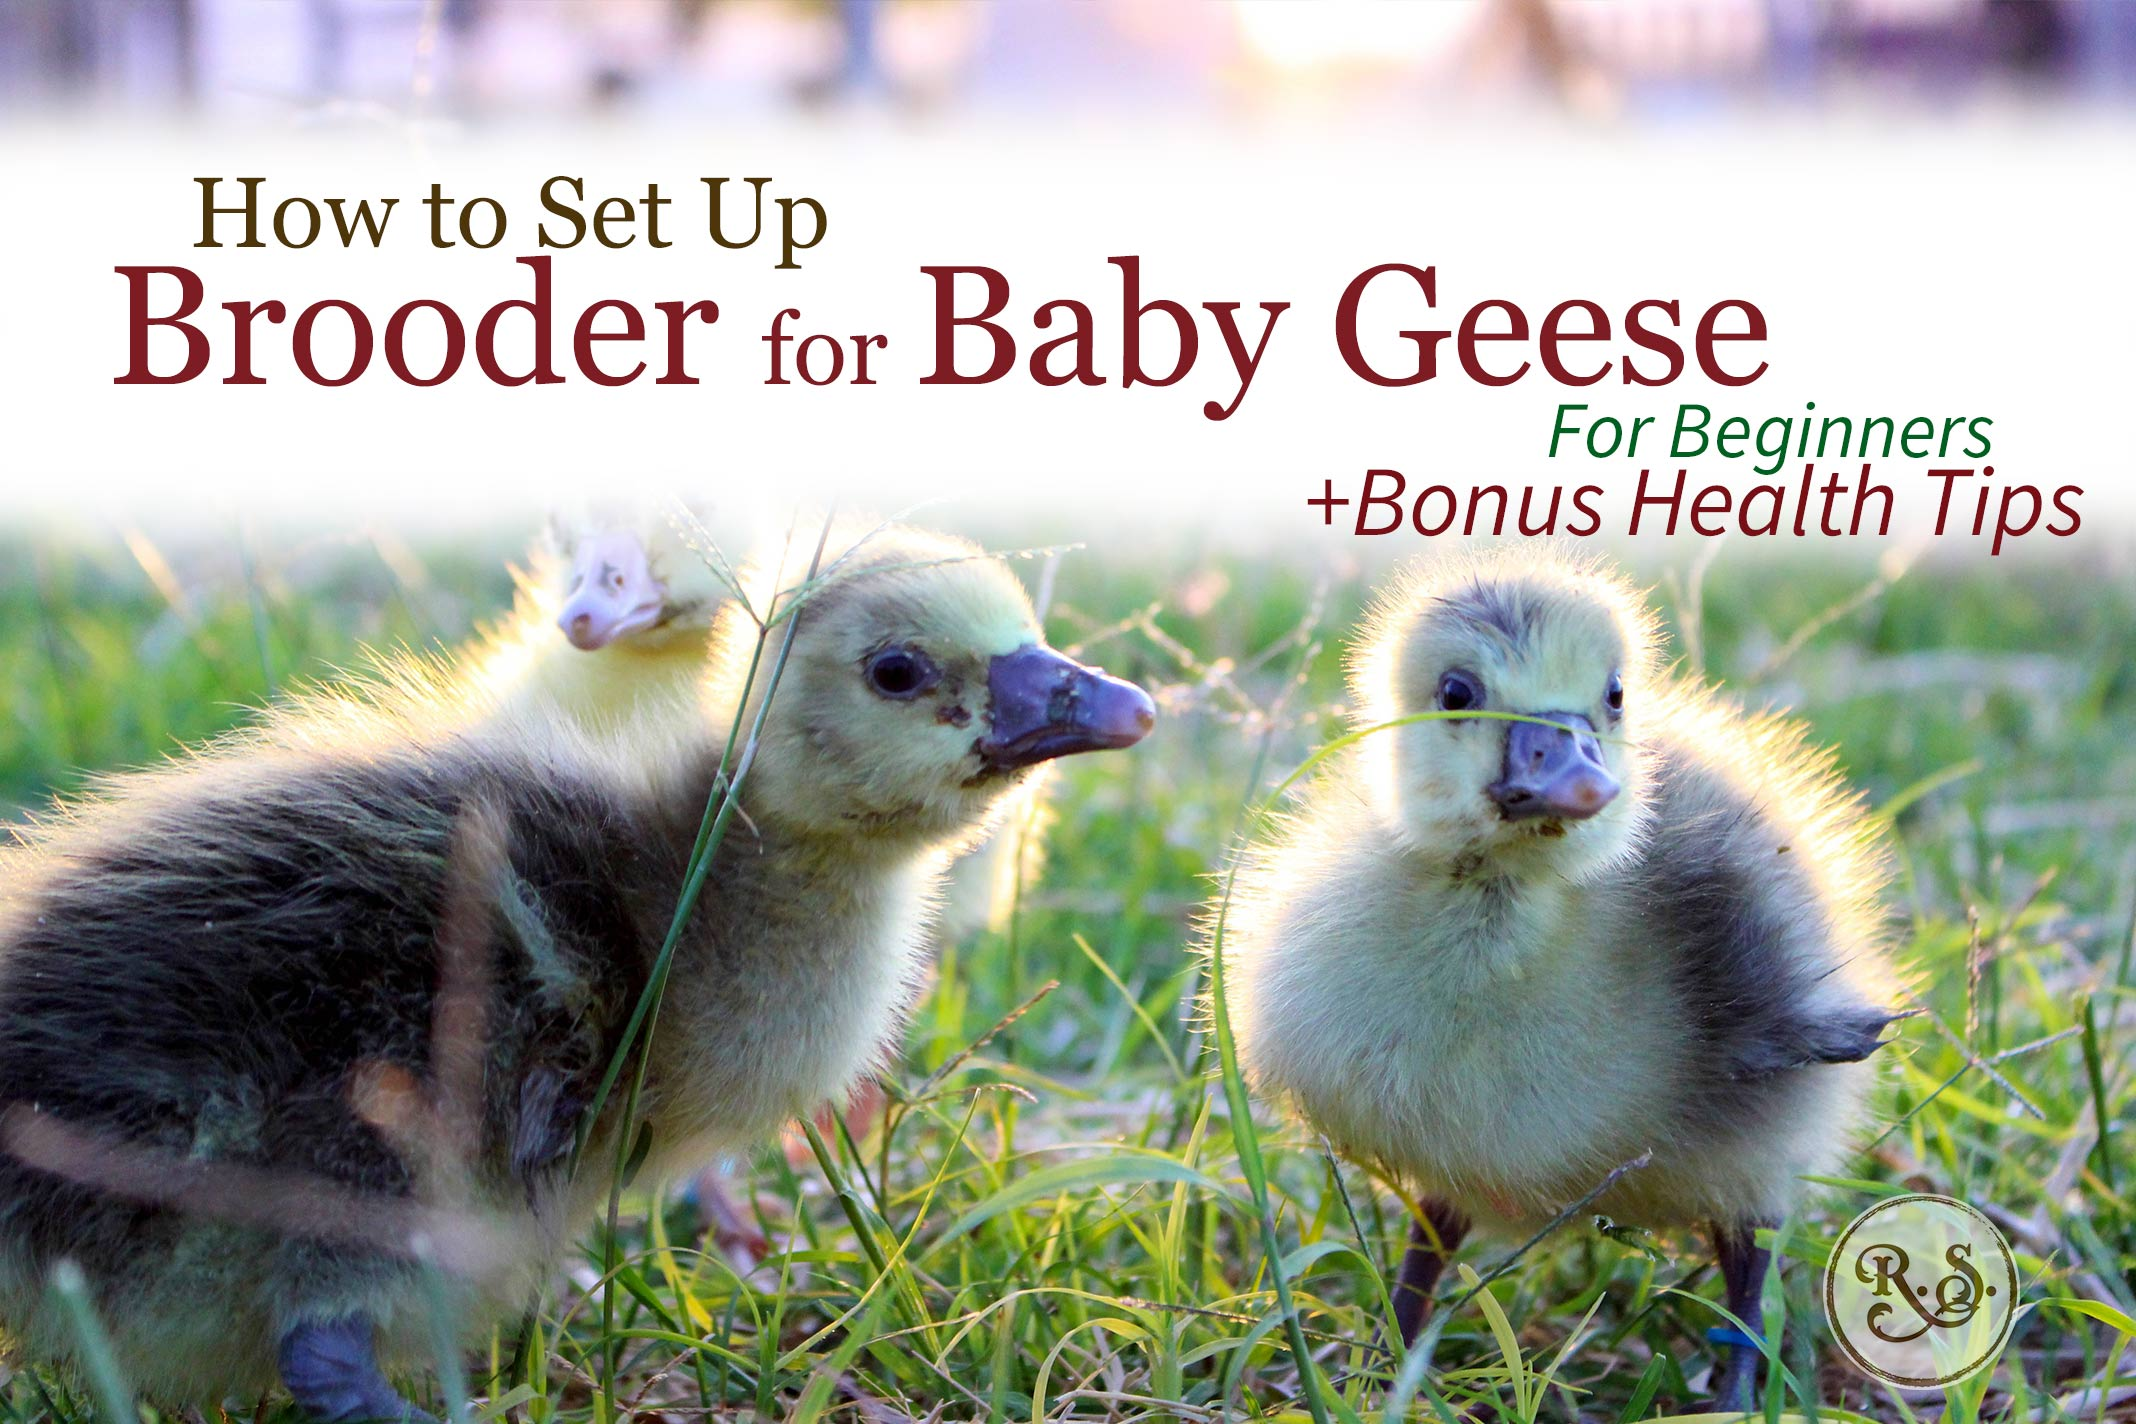 Raising geese starts with baby goslings. Learn how to set up a brooder and get your geese off to a healthy start—for beginners.